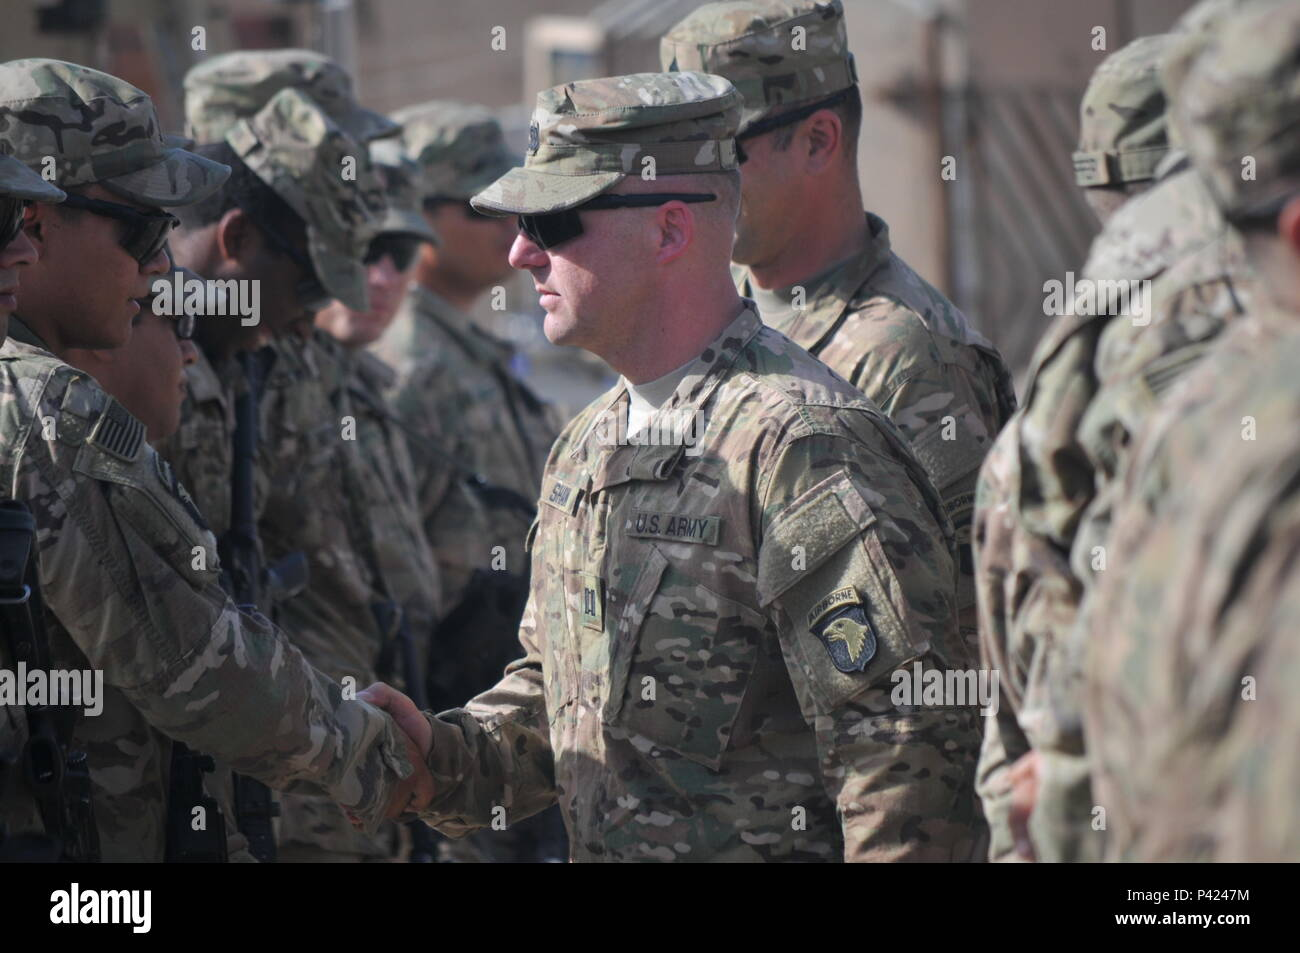 Cpt. Justin Shaw, center, commander of Company D, 1st Battalion, 26th Infantry Regiment, Task Force Strike, shakes the hands of Soldiers of Company D after their patching ceremony June 3, 2016, in Taji, Iraq. Soldiers are allowed to wear the patch for the rest of their careers, signifying service in a theater of combat operations with the 101st Airborne Division (Air Assault). Taji is one of four Combined Joint Task Force - Operation Inherent Resolve building partner capacity locations dedicated to training Iraqi Security Forces. (U.S. Army photo by 1st Lt. Daniel Johnson/Released) - Stock Image